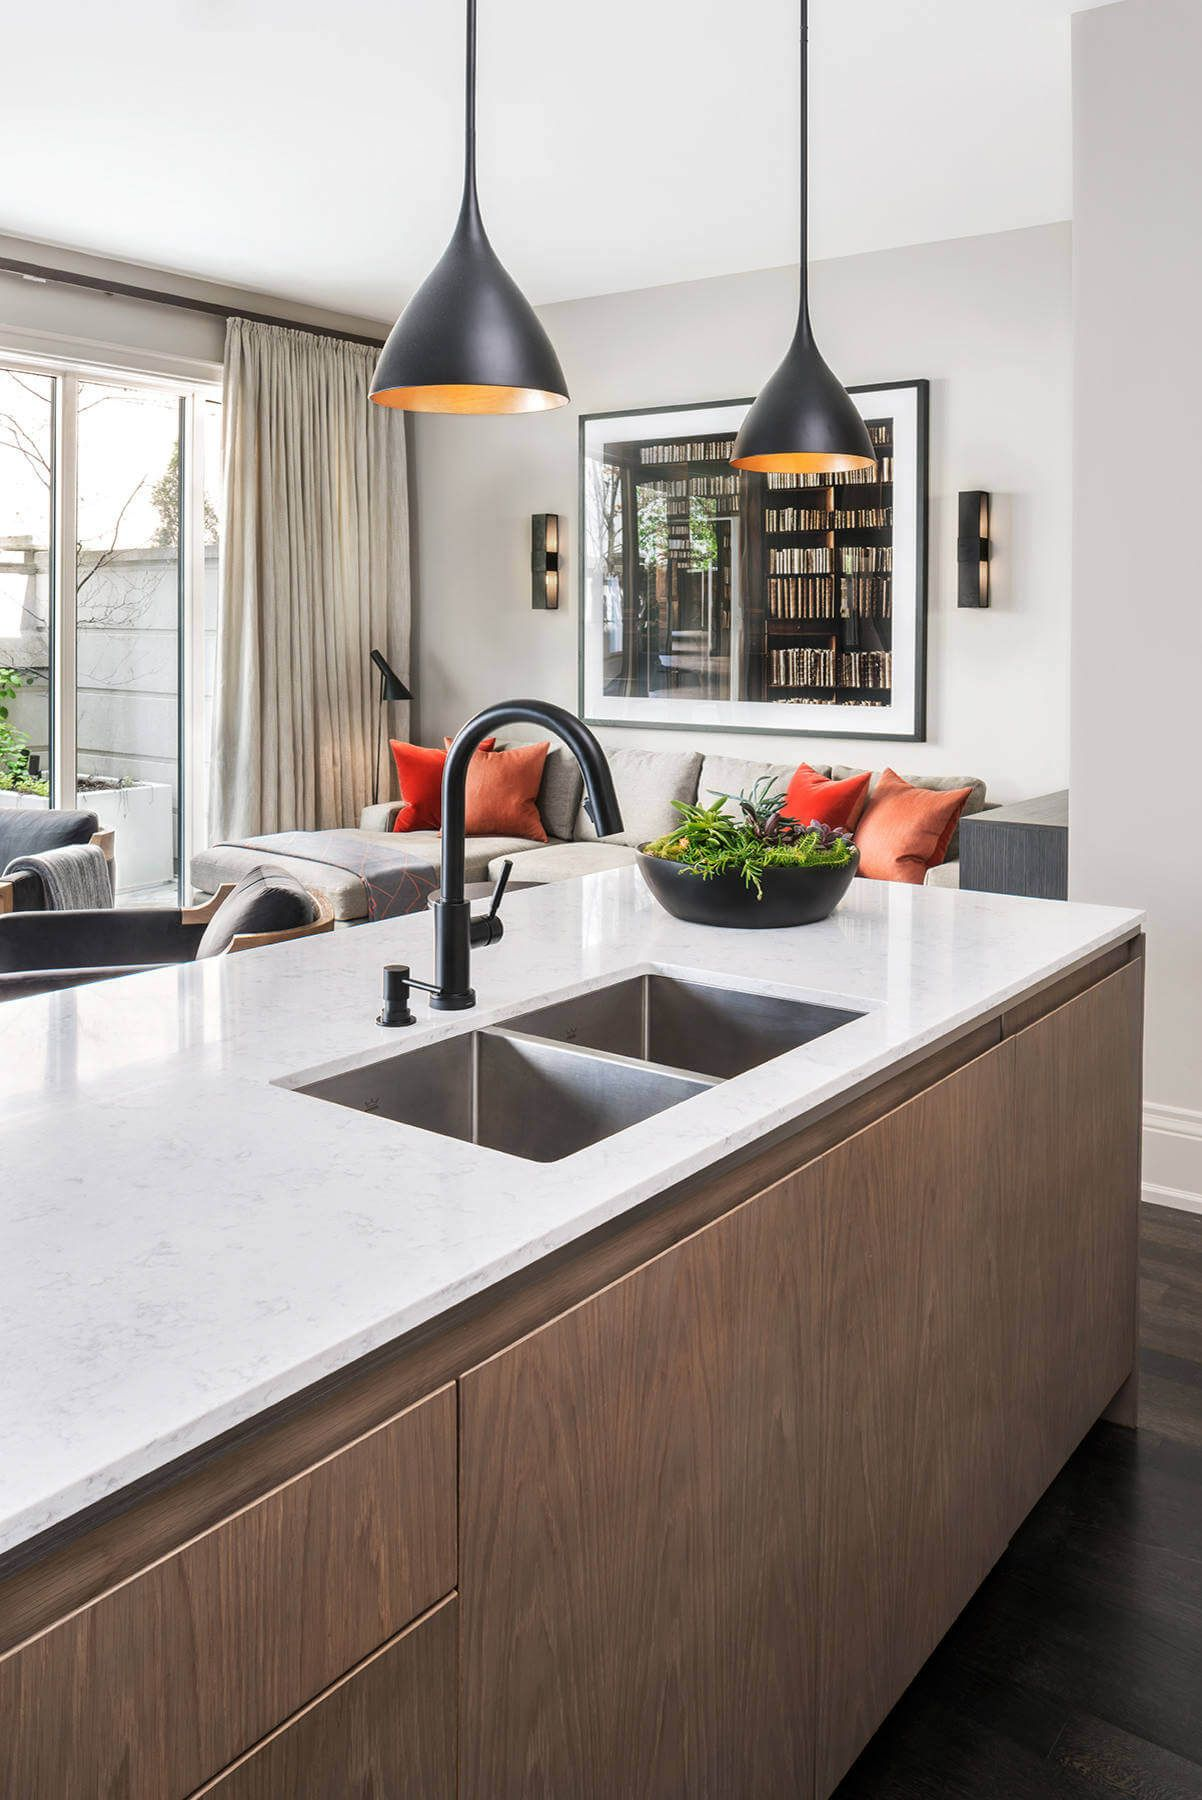 Home in toronto by laura hay decor u design kitchen home is